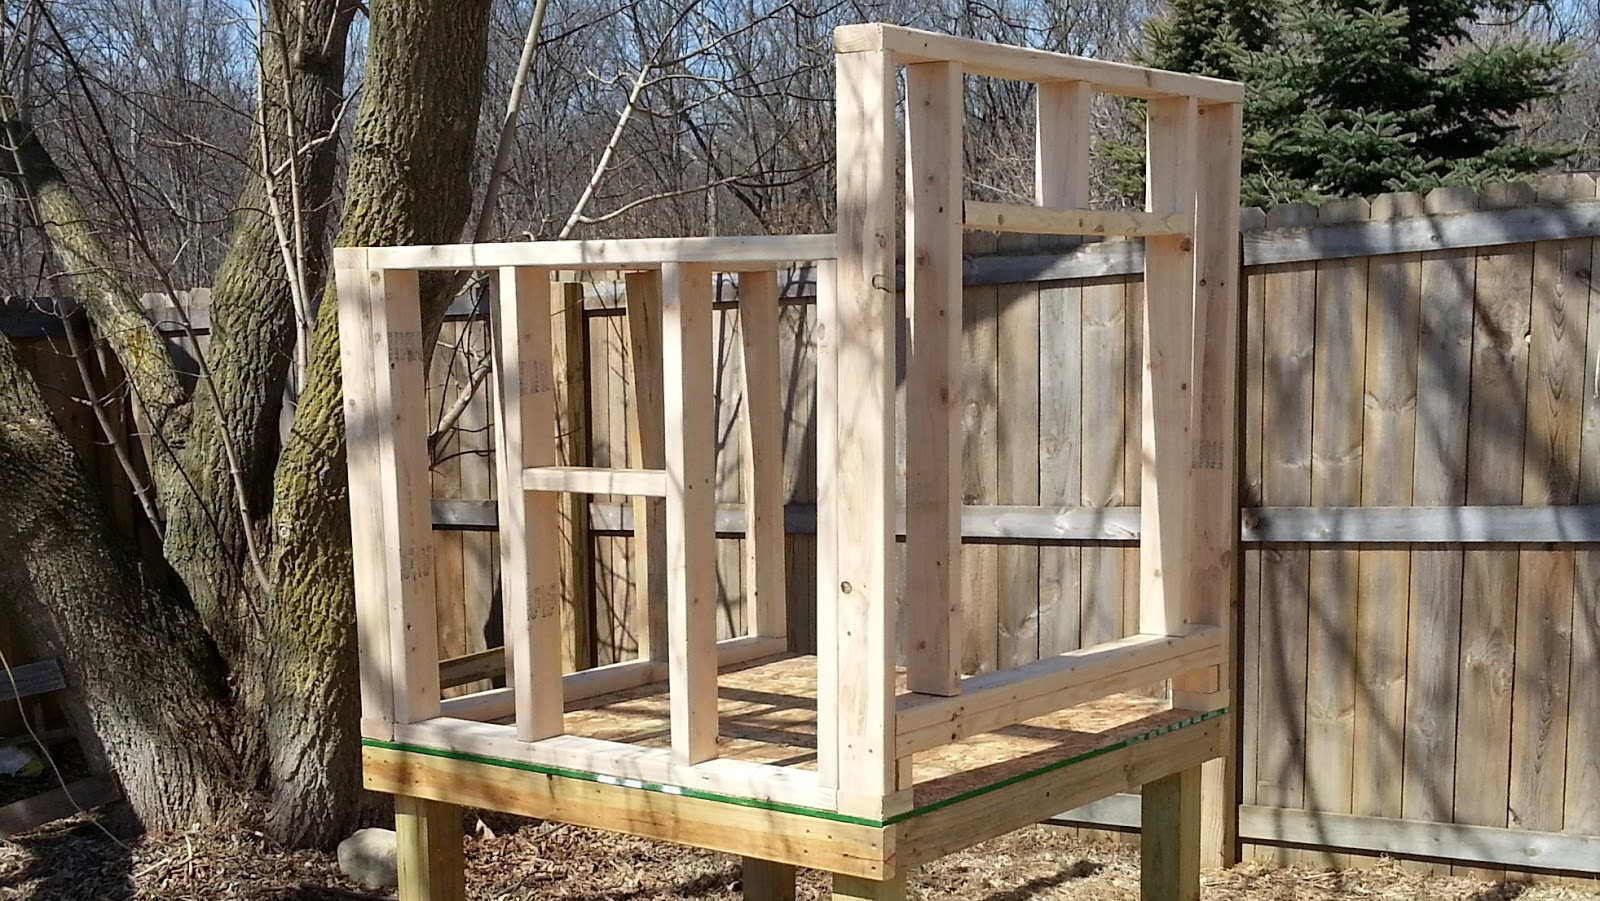 A Frame Coop Plans: How To Build The Simple Suburban Chicken Coop